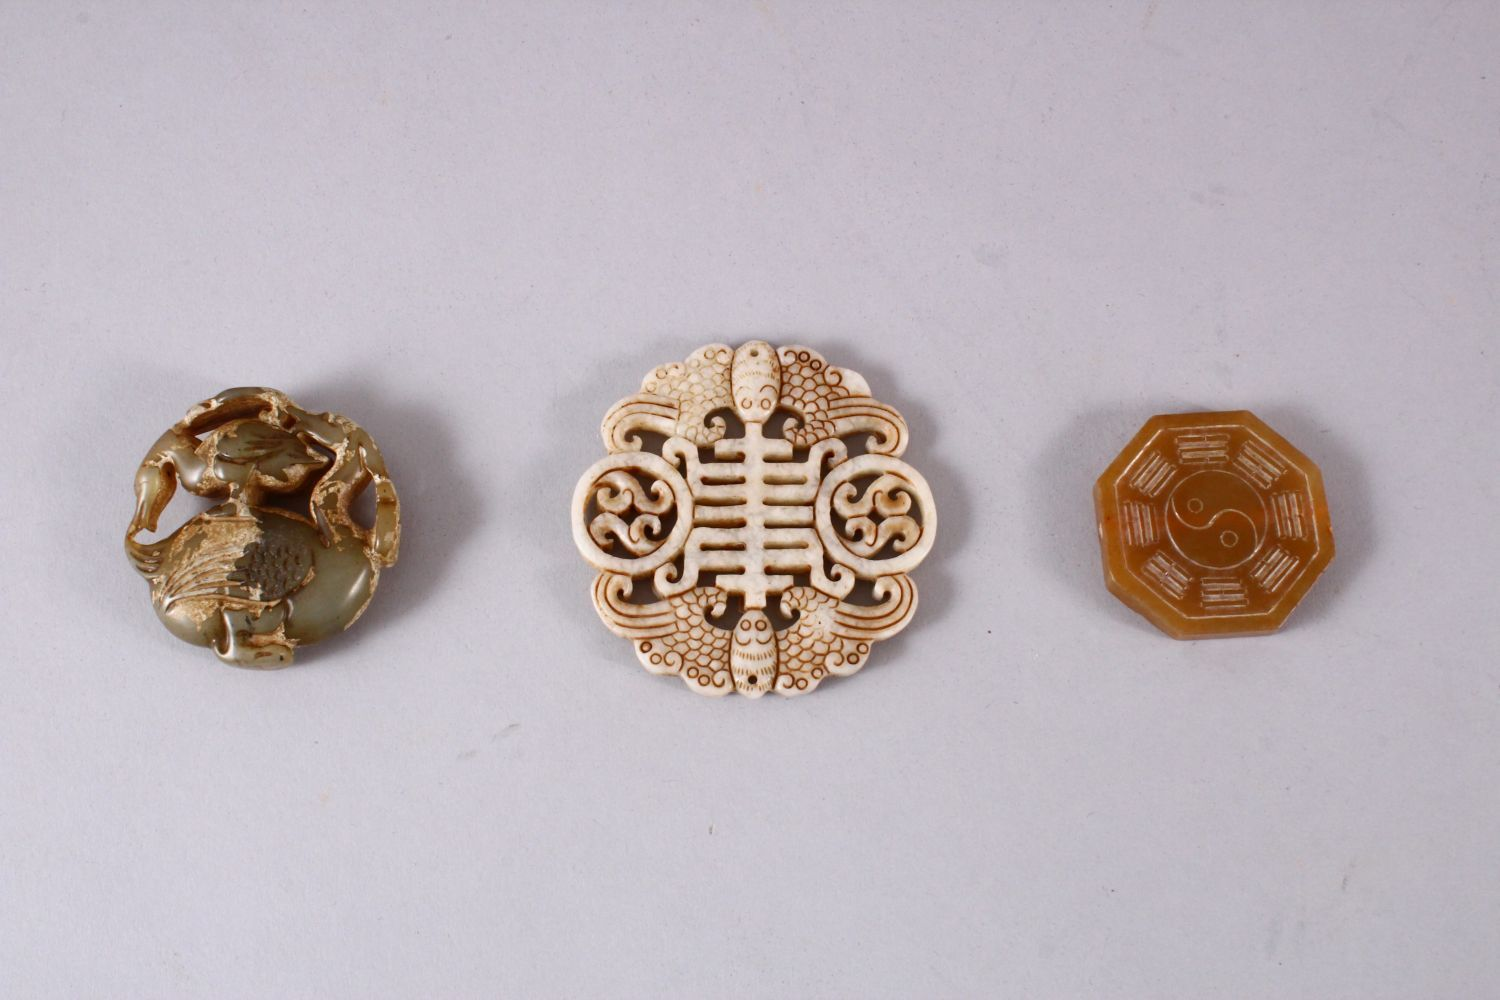 THREE CHINESE CARVED JADE PENDANTS, One carved in the form of TWIN BATS AND SYMBOLS, 6.5cm, one - Image 5 of 5